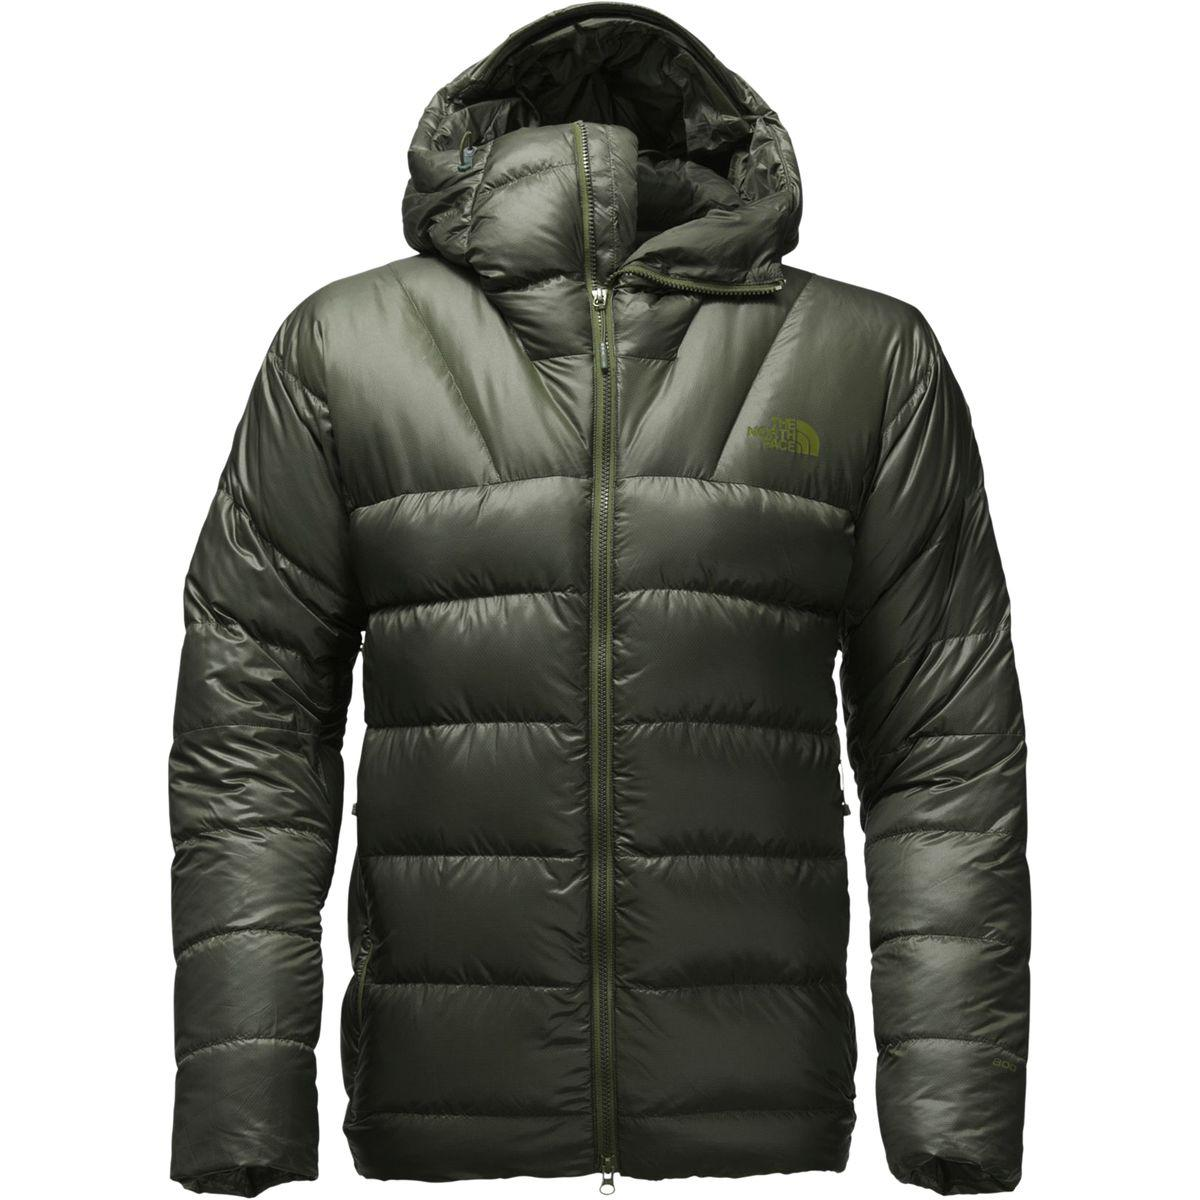 ... australia lyst the north face immaculator hooded down parka in green  for men c177b 684b9 3e79a72d3